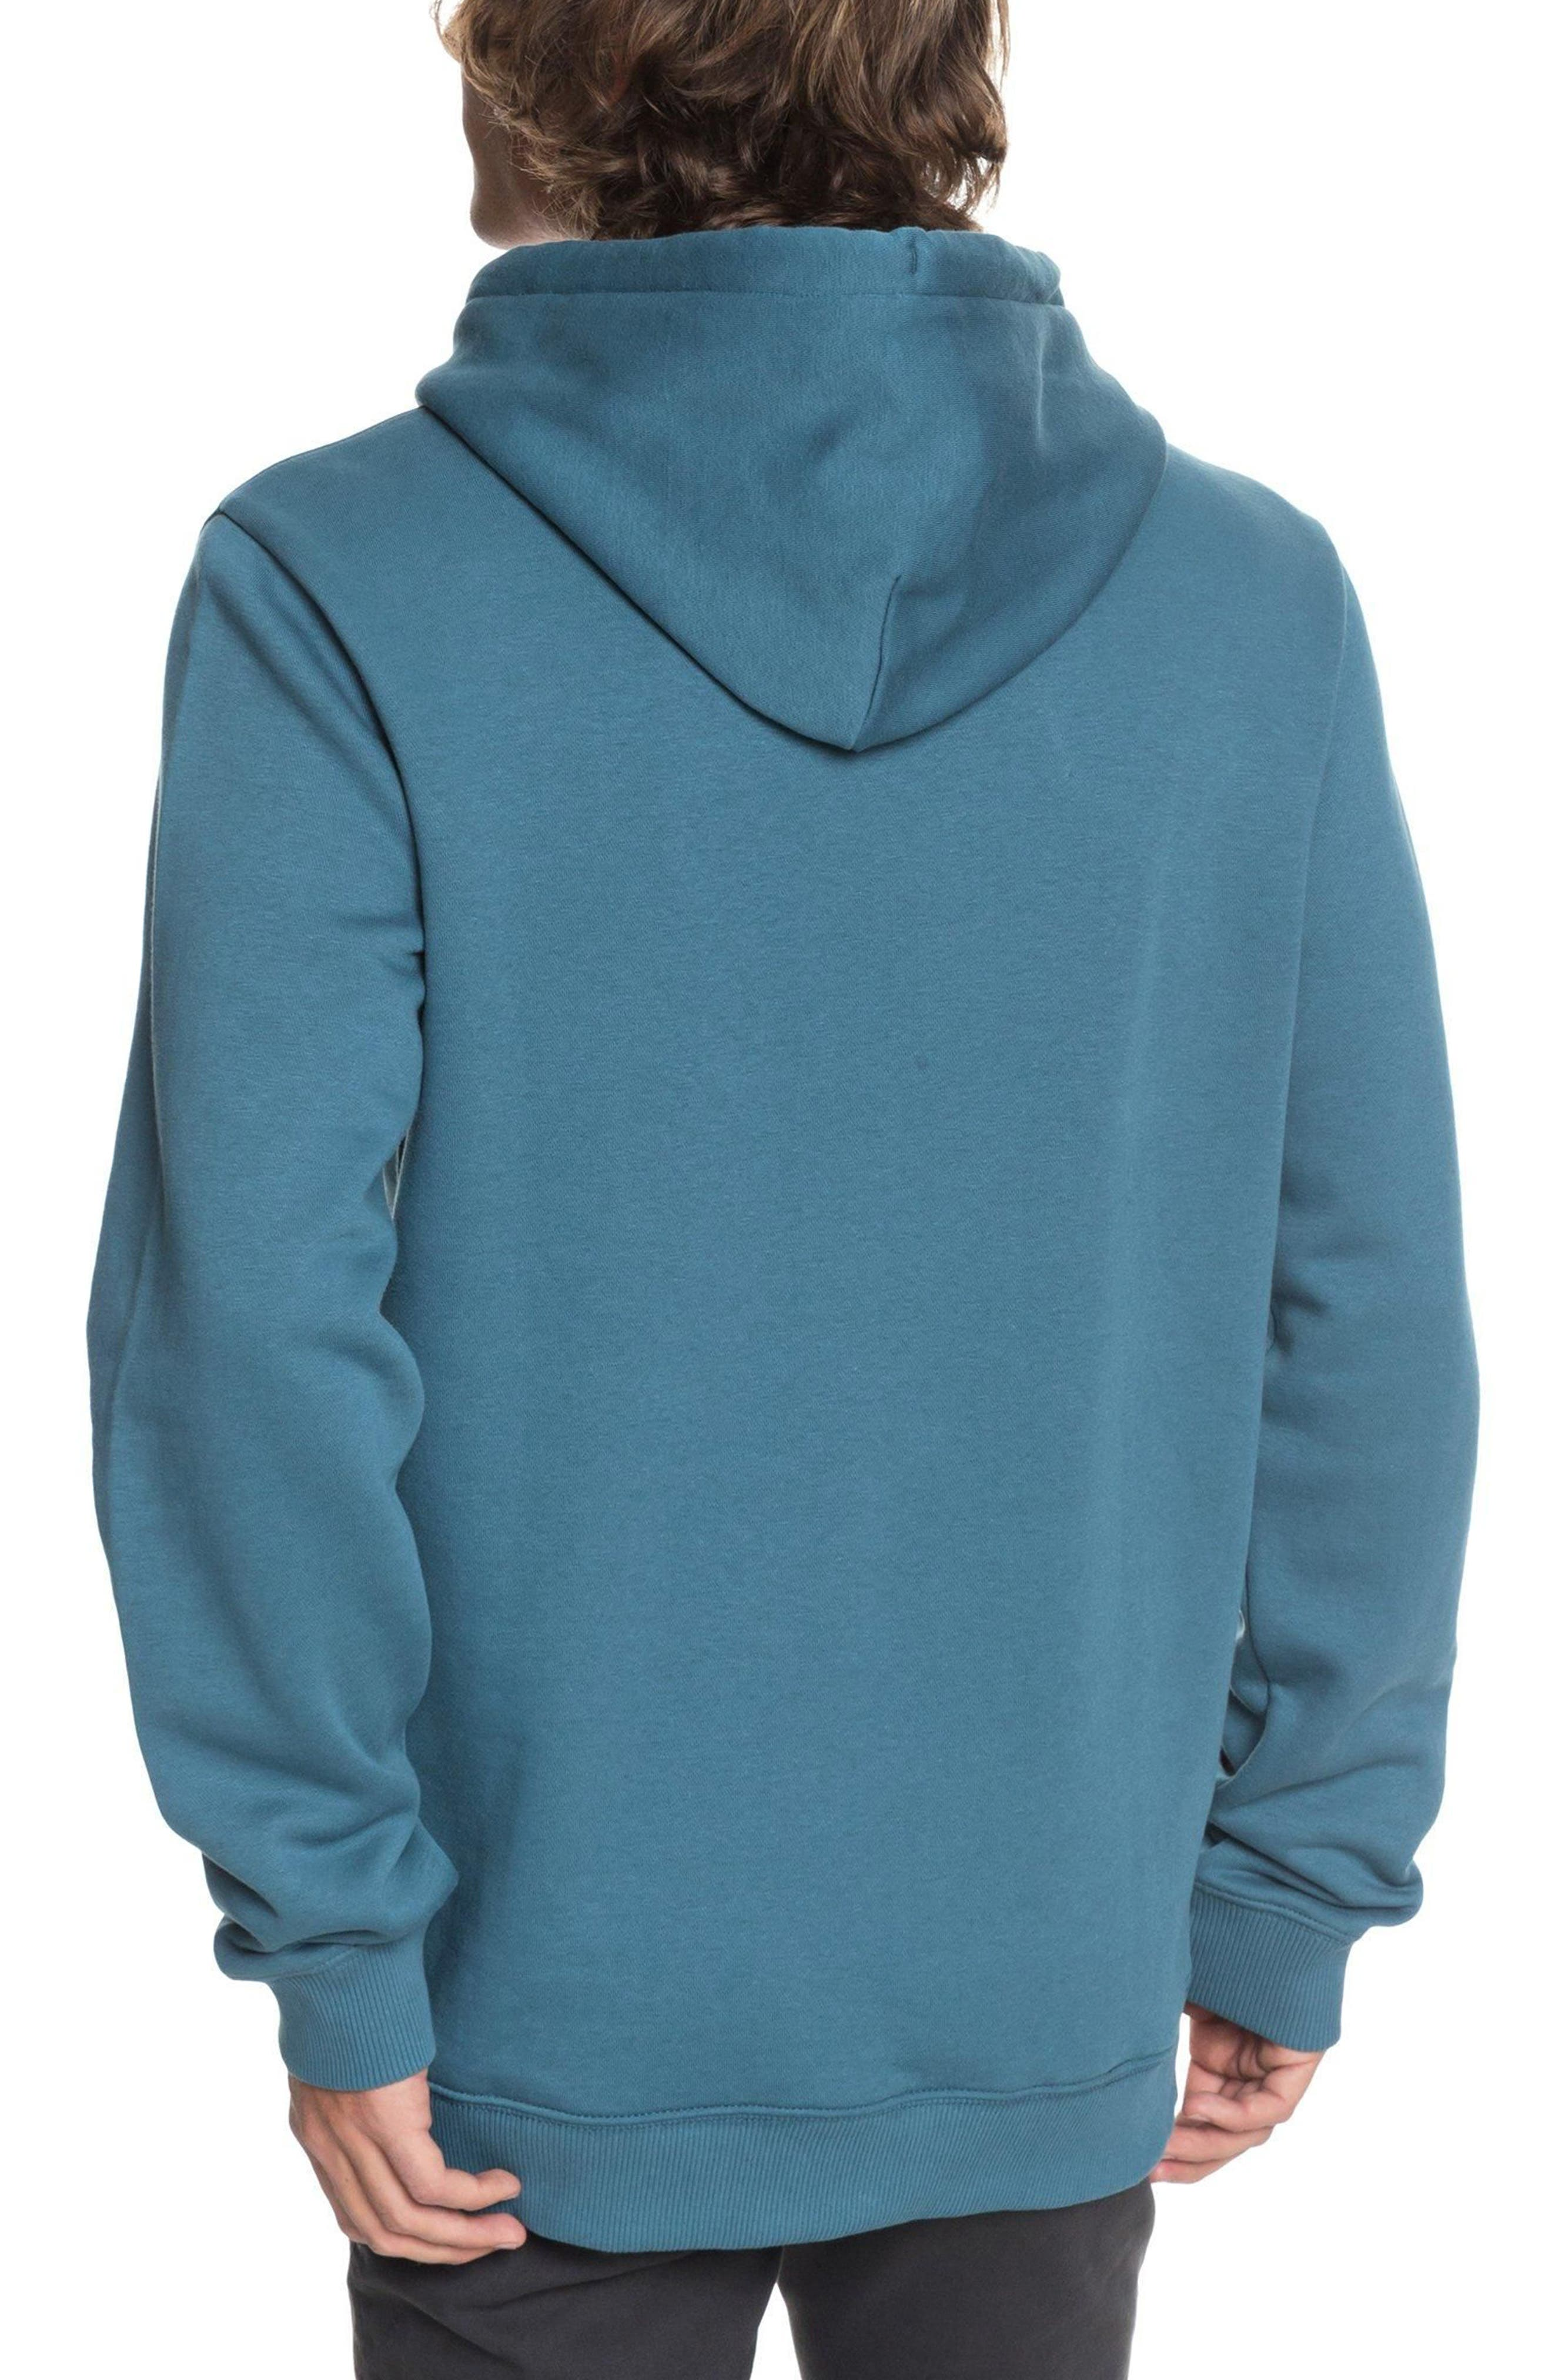 Twin Fin Mates Hoodie,                             Alternate thumbnail 2, color,                             440